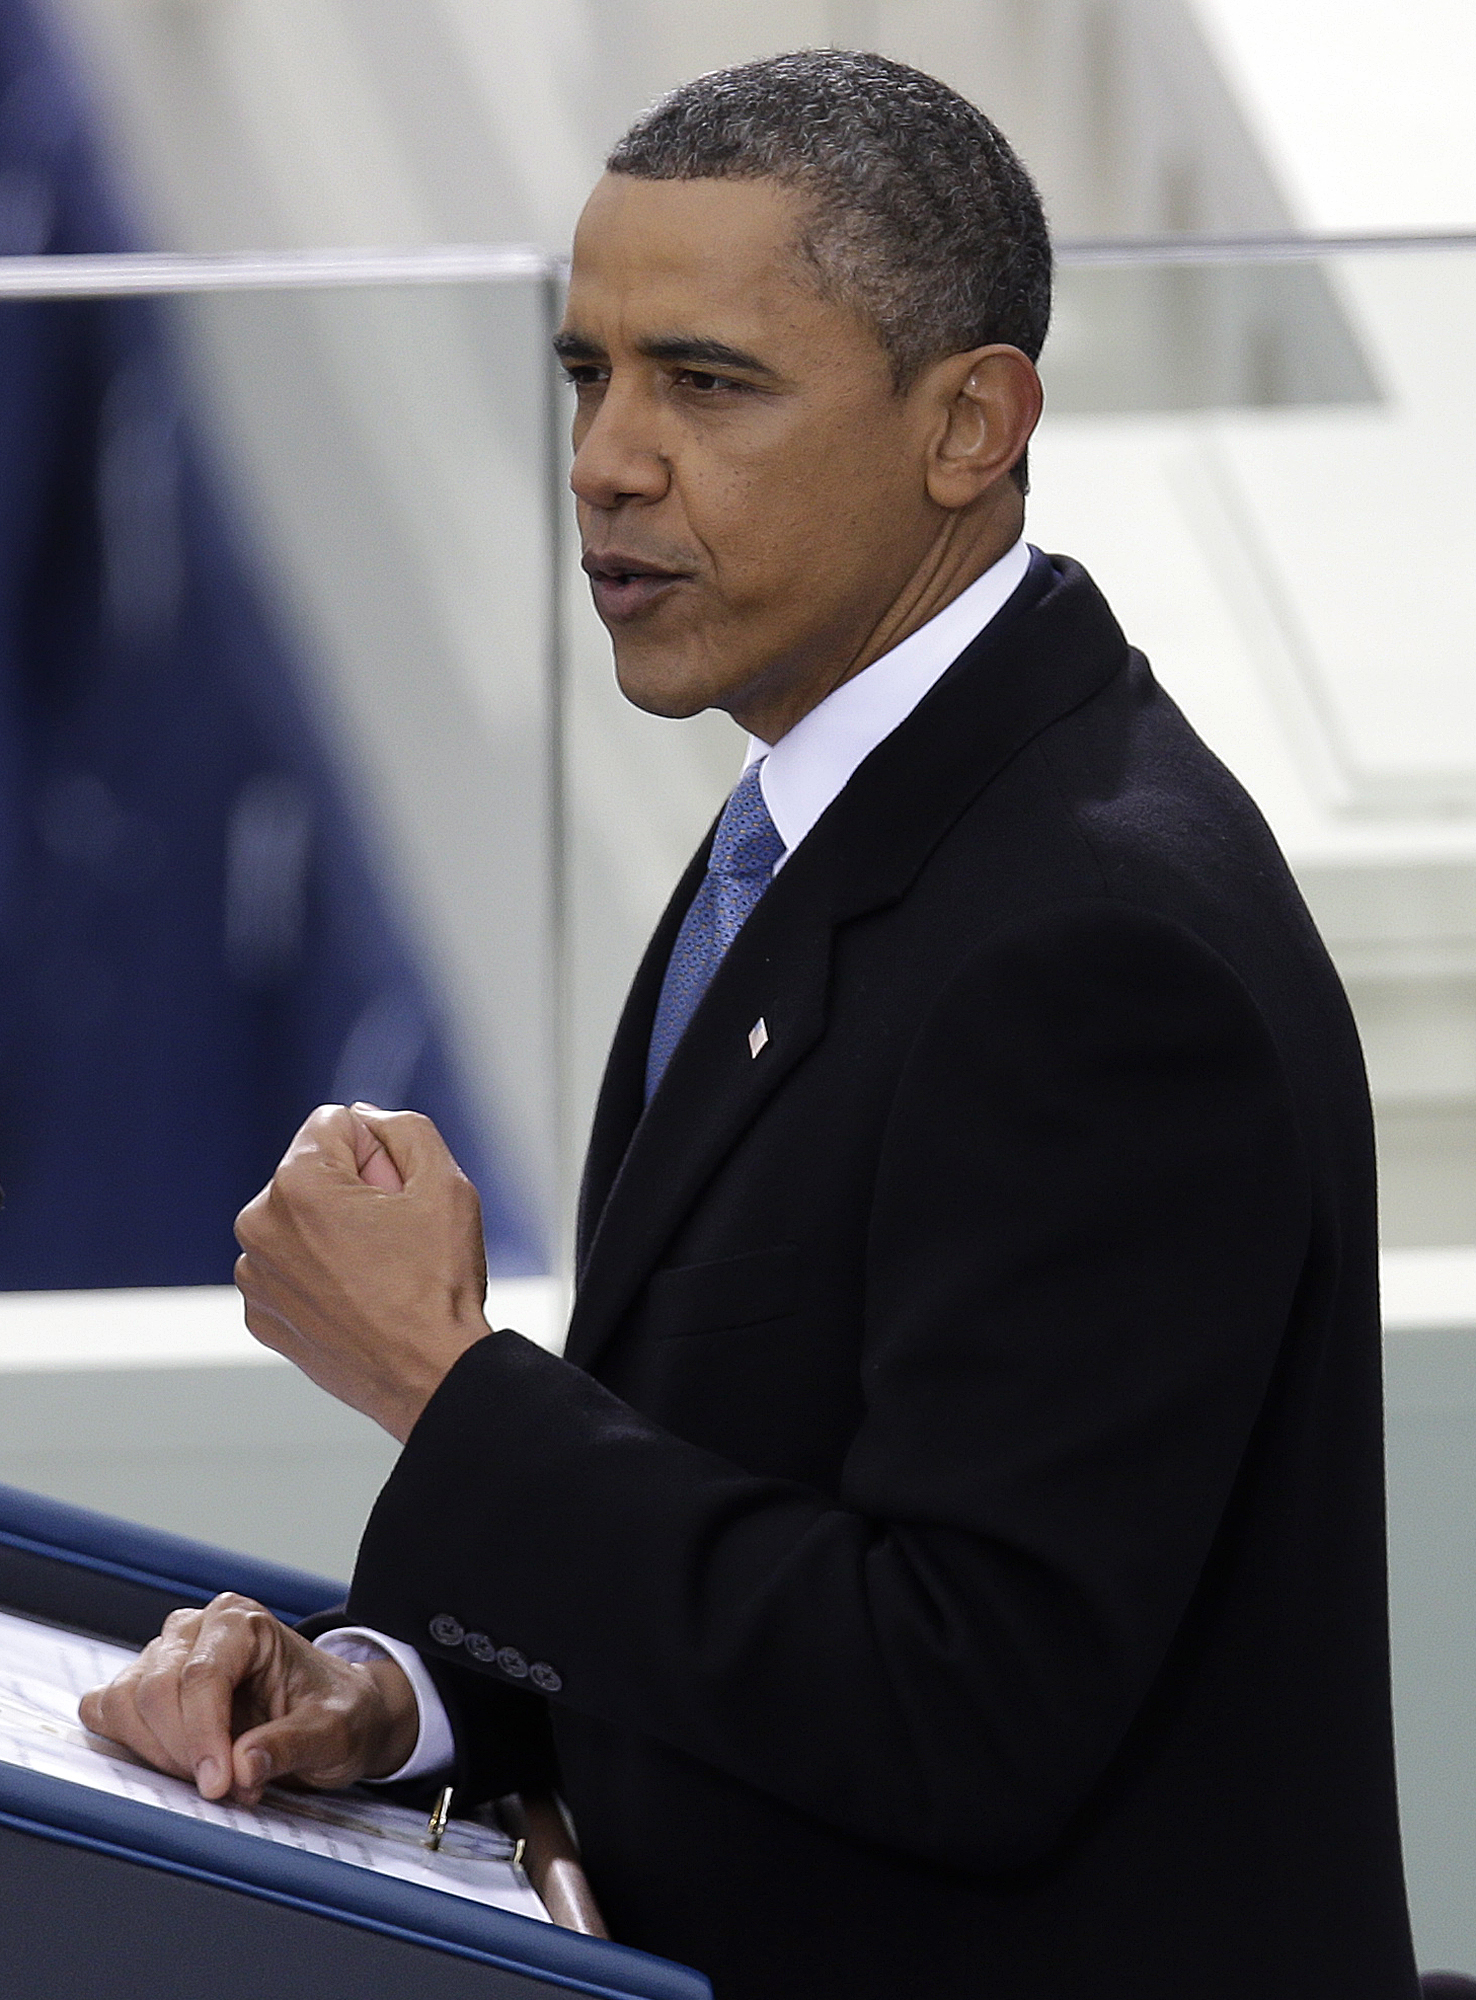 Obama talks about basic principles in inaugural speech ...